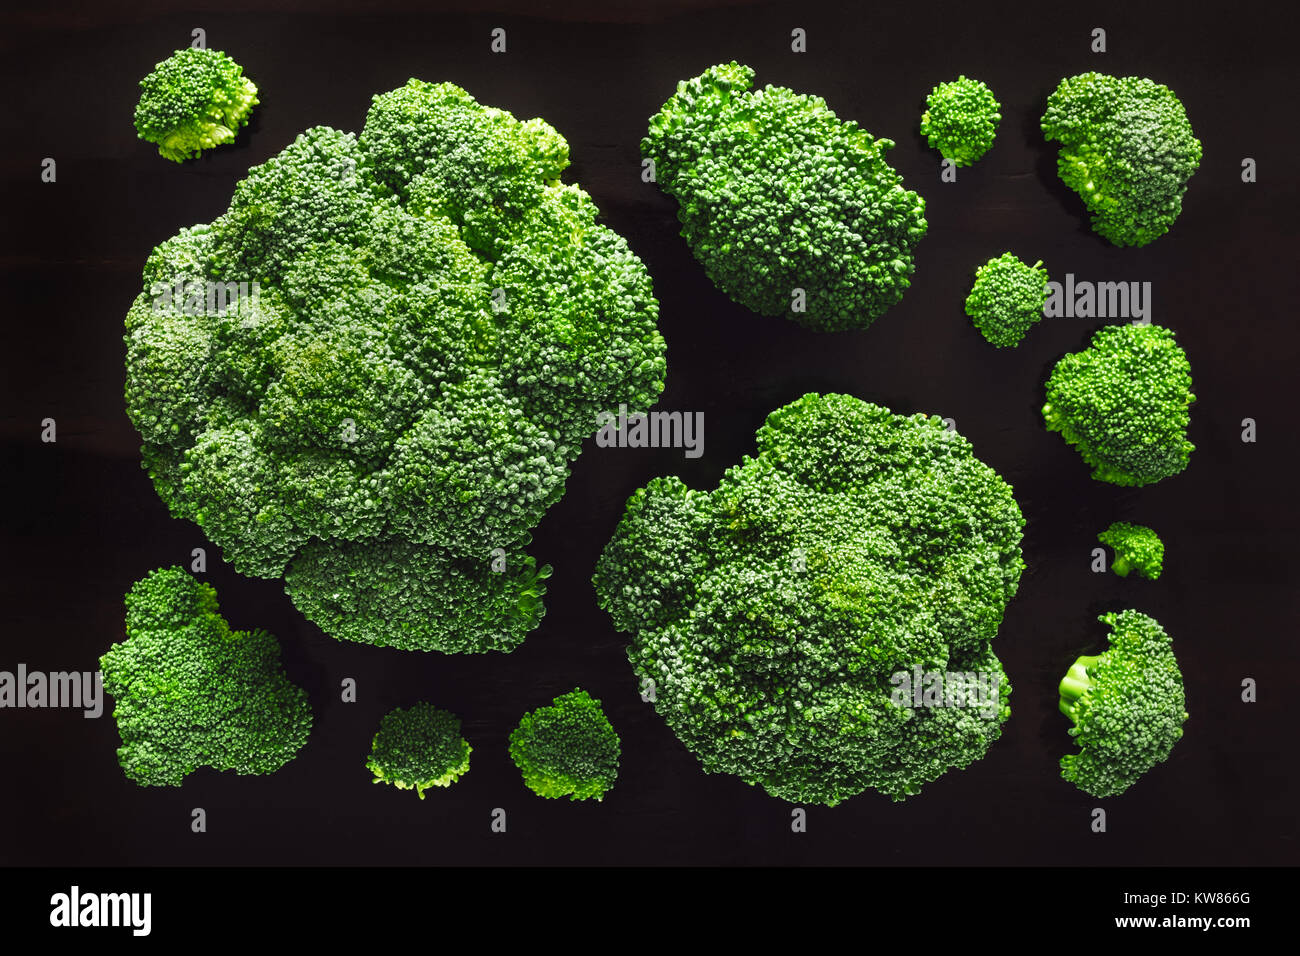 Broccoli Flower From Above on Dark Table - Stock Image